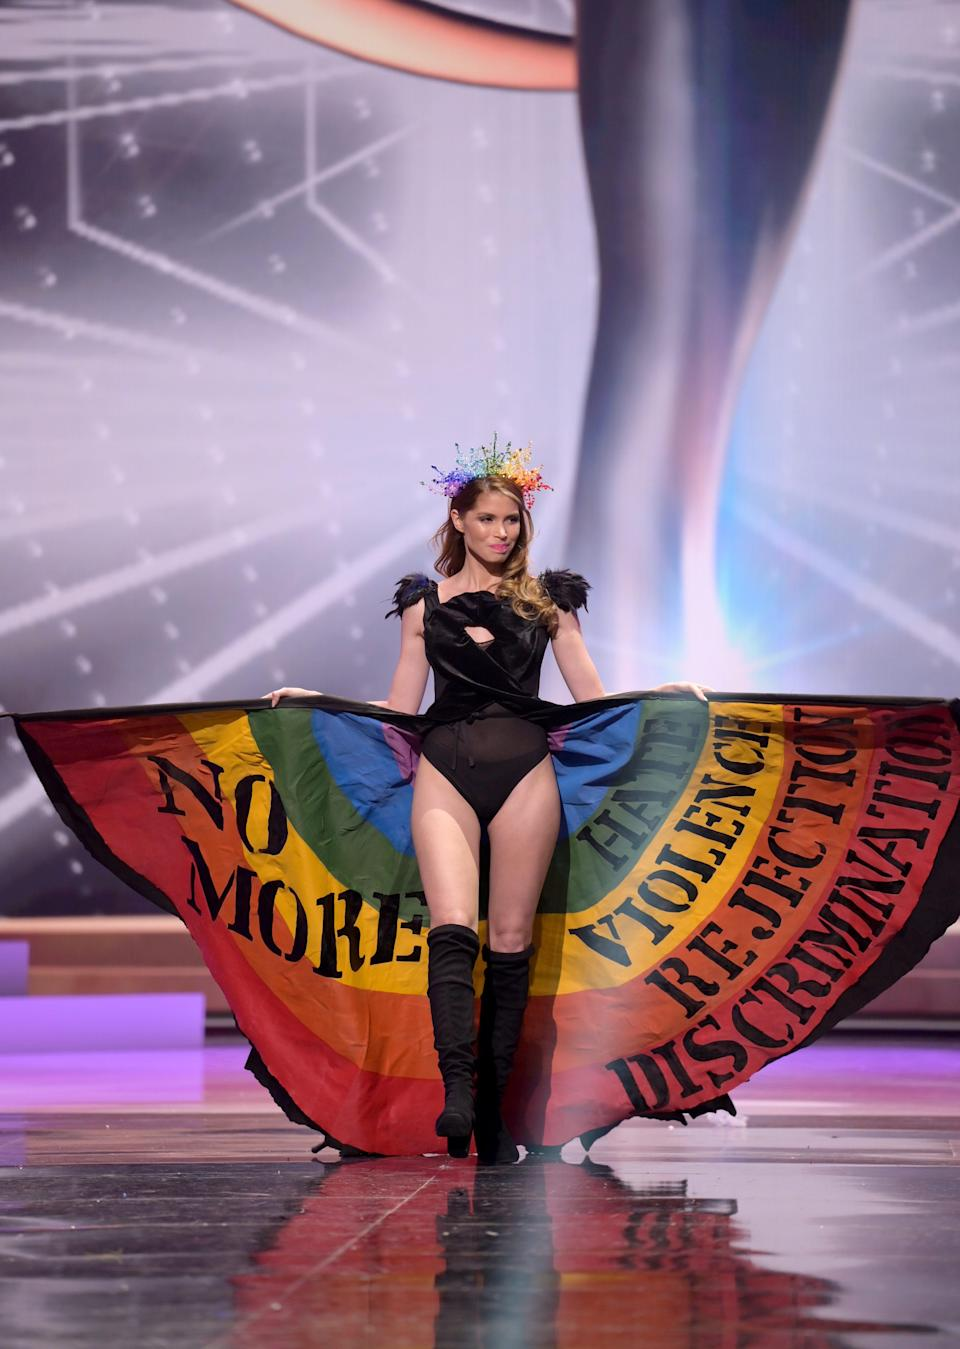 Lola De los Santos, Miss Universe Uruguay 2020, on stage during the National Costume Show at the Seminole Hard Rock Hotel & Casino in Hollywood, Florida, on May 13, 2021.